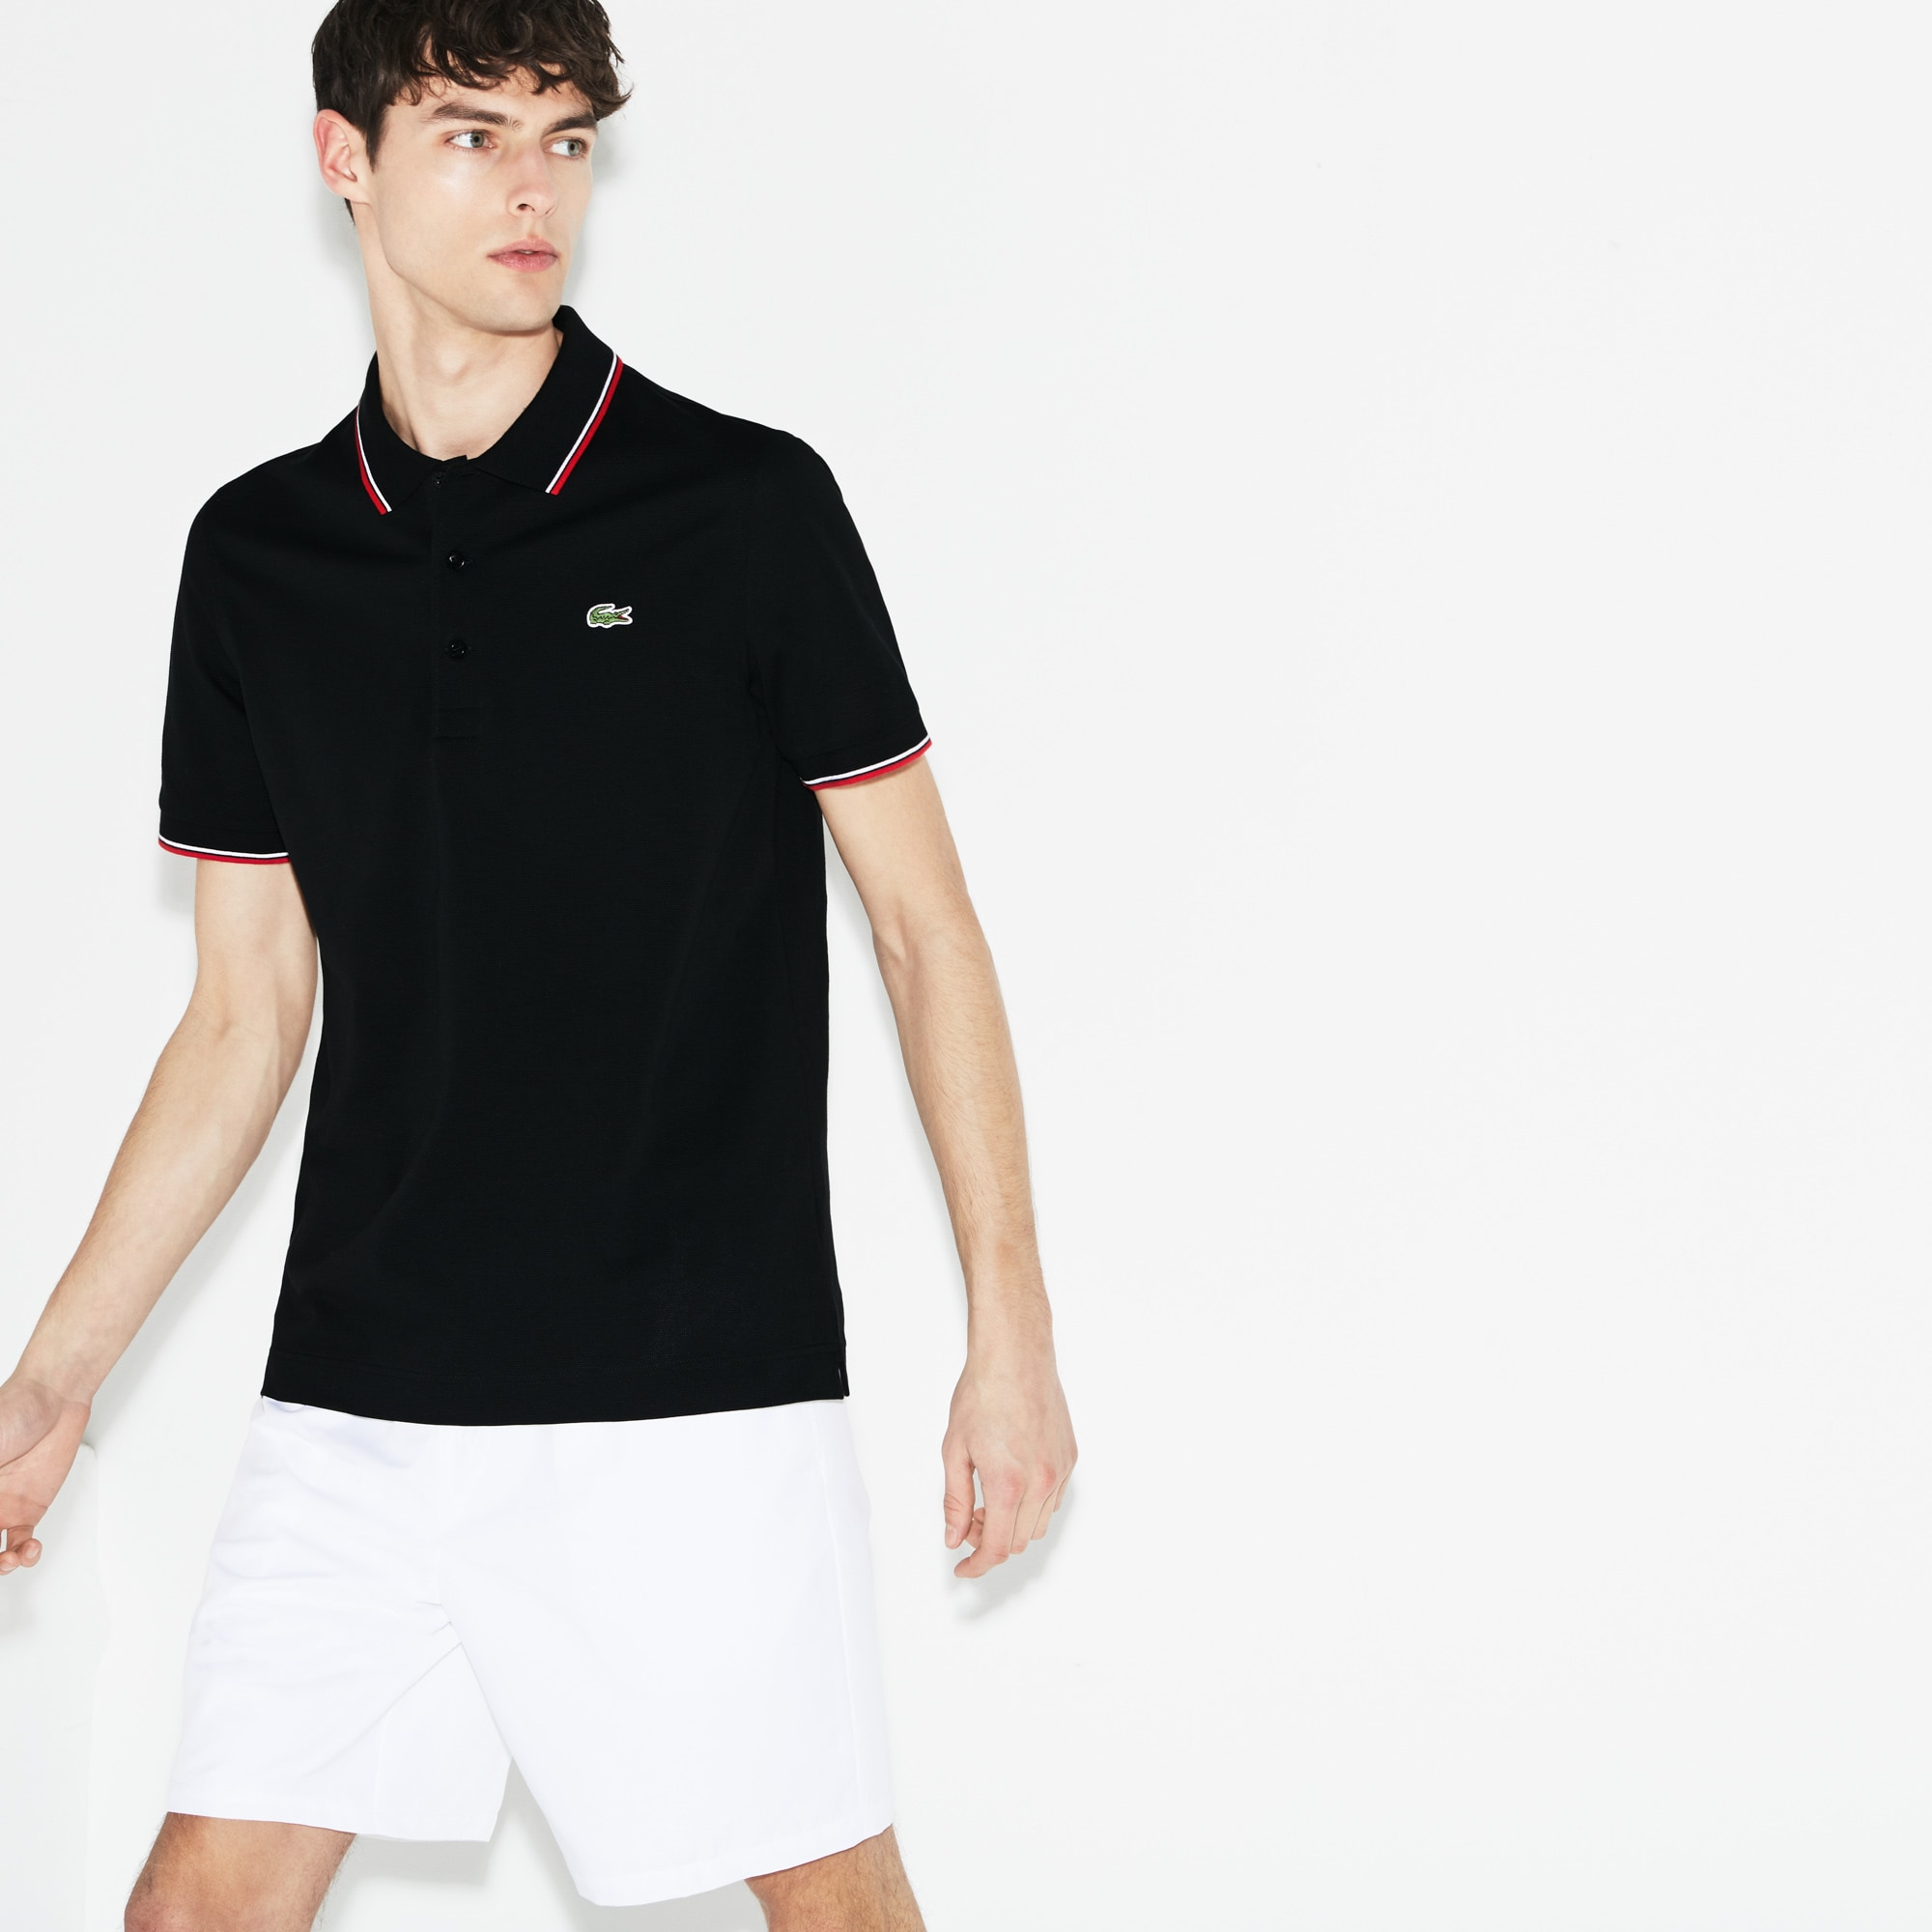 Men's SPORT Ultra-light Knits Polo With Piping